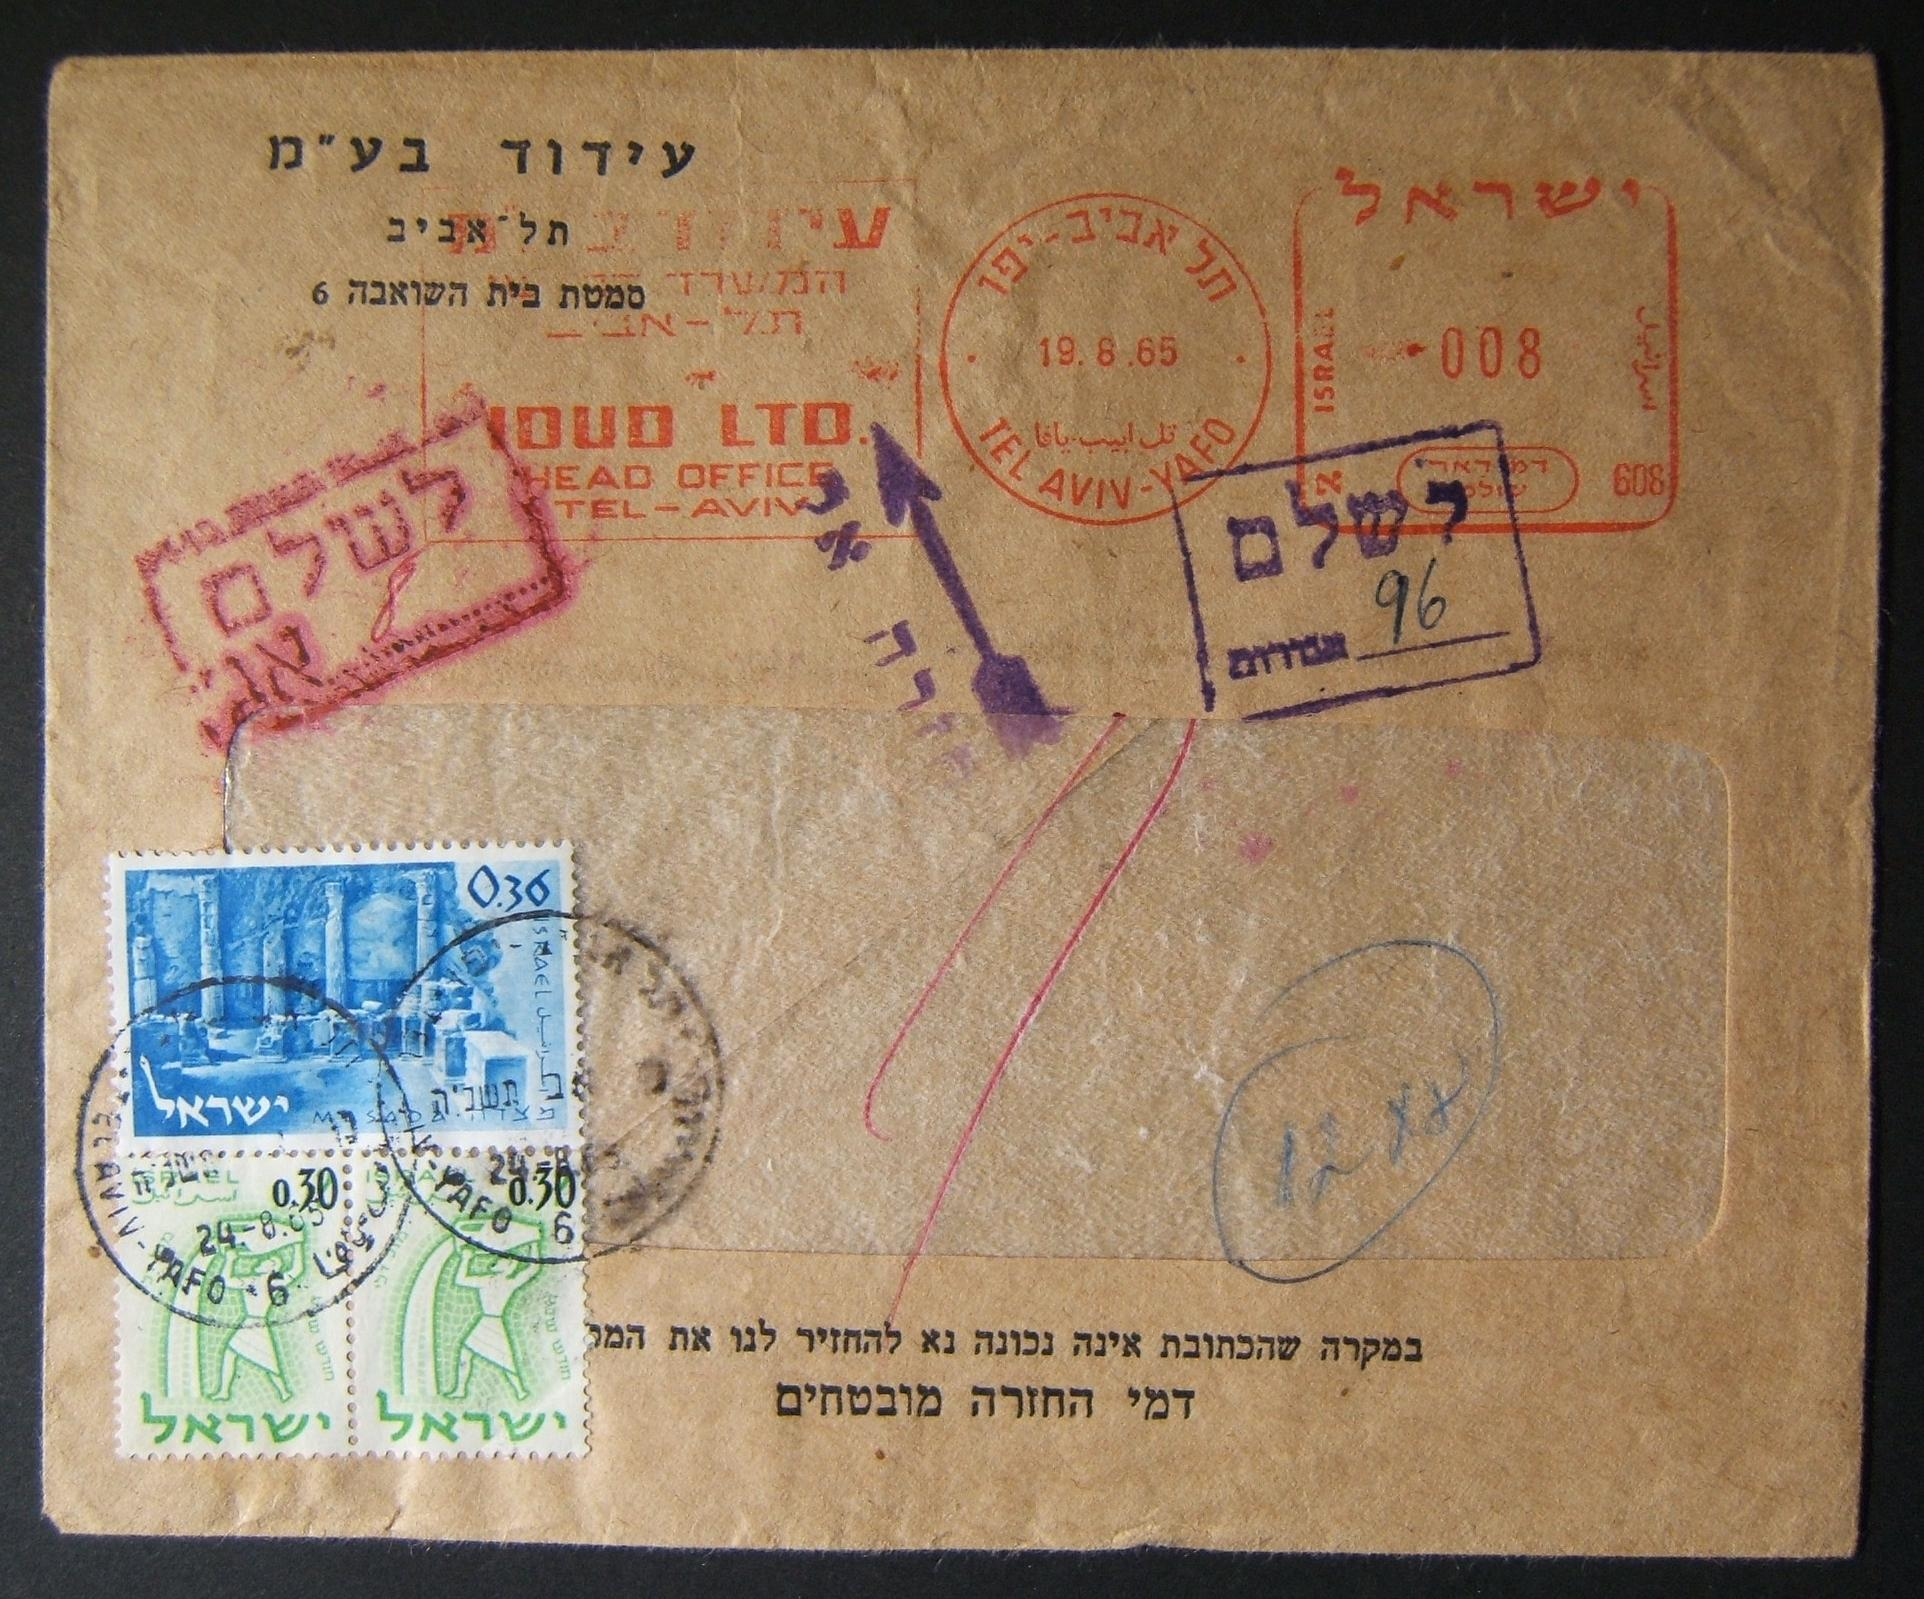 1965 domestic 'top of the pile' taxed franking: 19-8-65 printed matter commercial cover ex TLV branch of Idud Ltd. franked by meter payment at the DO-11 period 8 Ag PM rate but ret